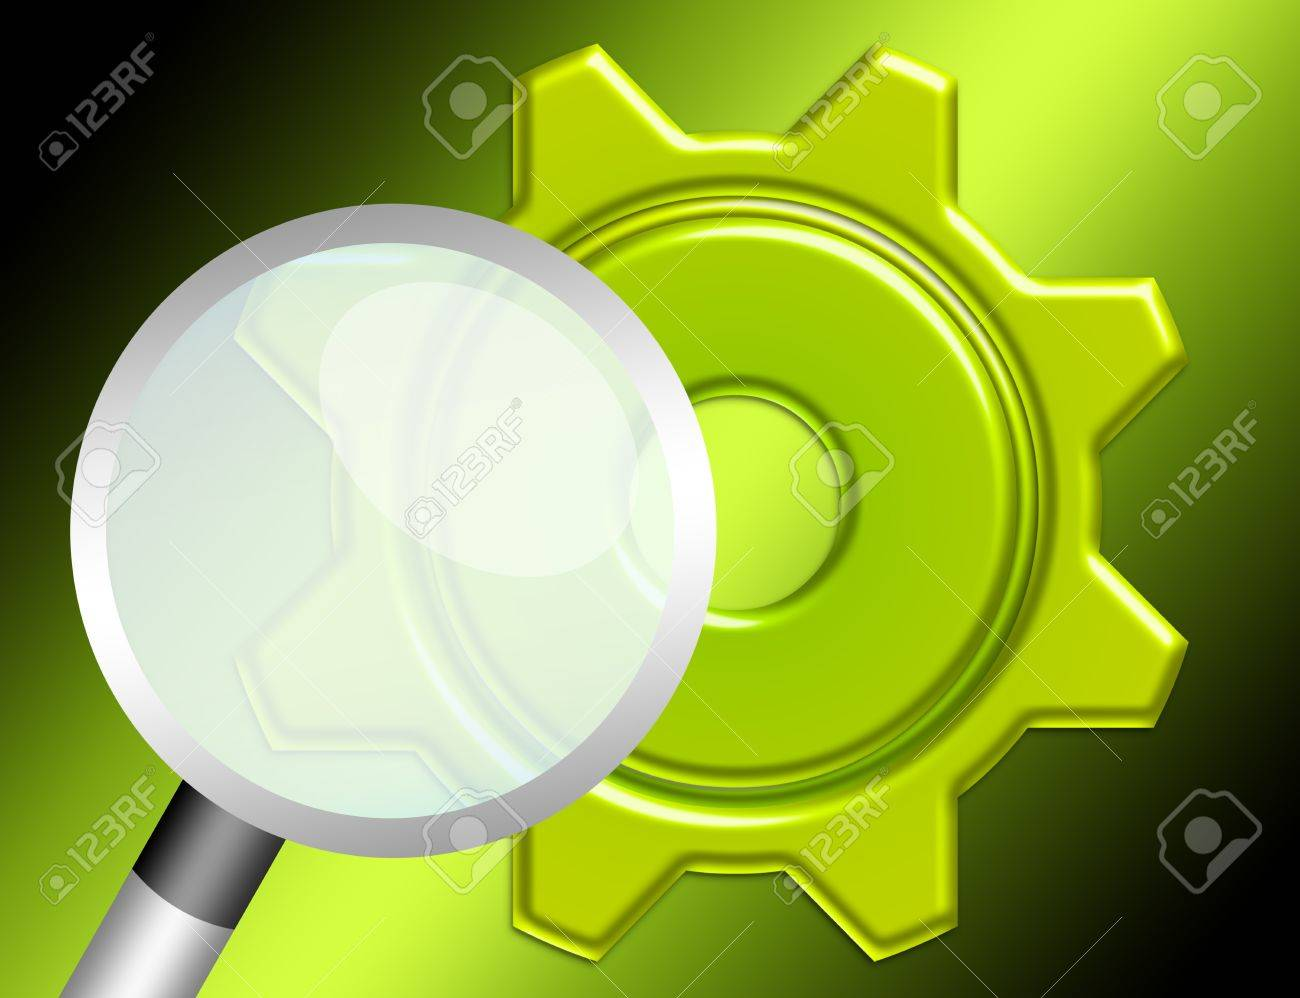 green gear and magnifying glass isolated over green background Stock Photo - 10143645